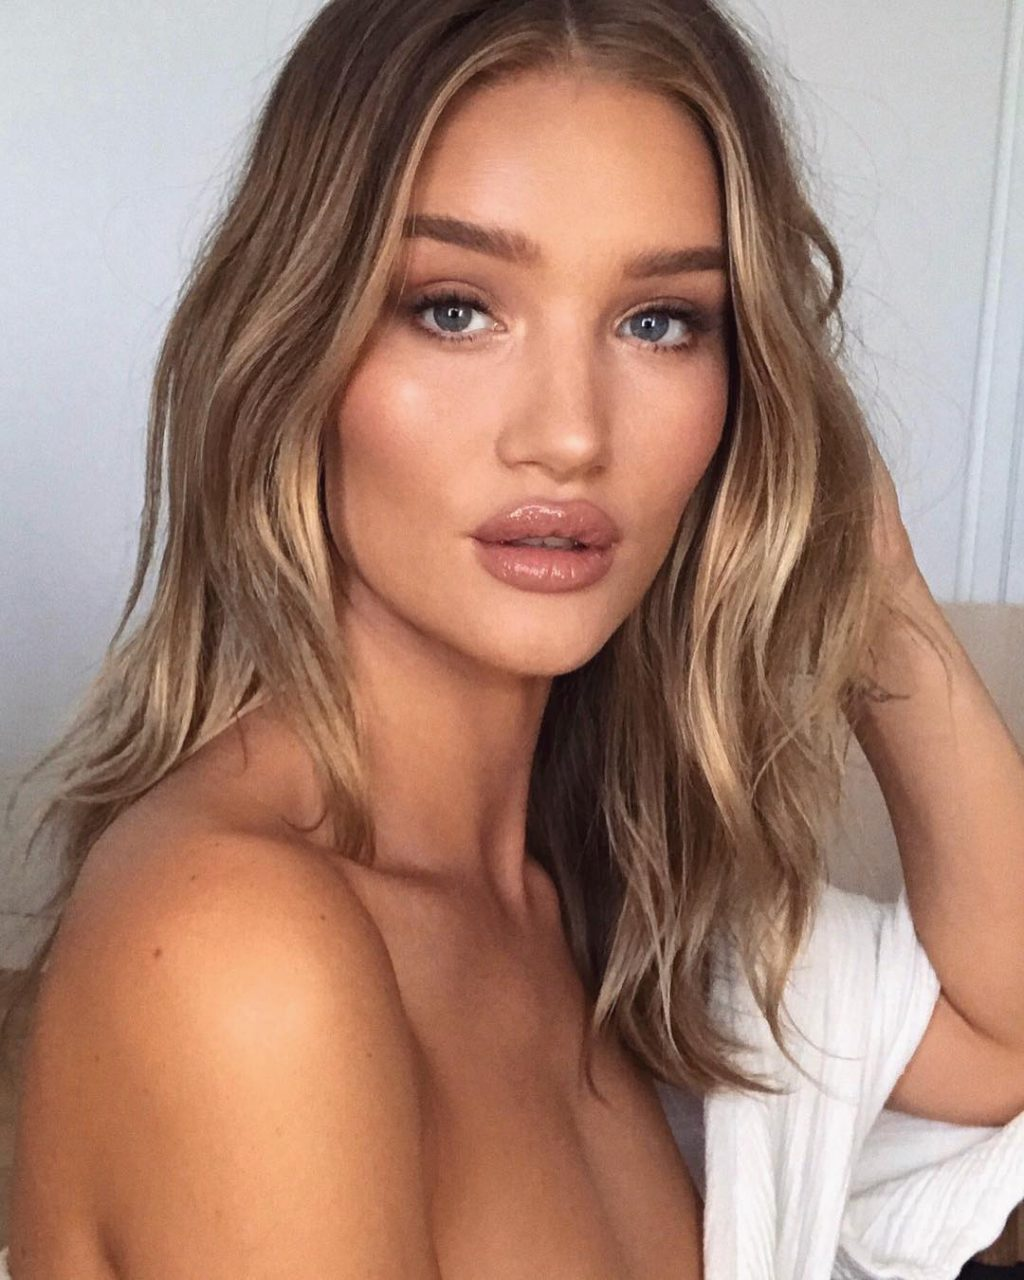 In Honor of Rosie HW's Perfect Pout, We Test the Top Lip Plumping Products